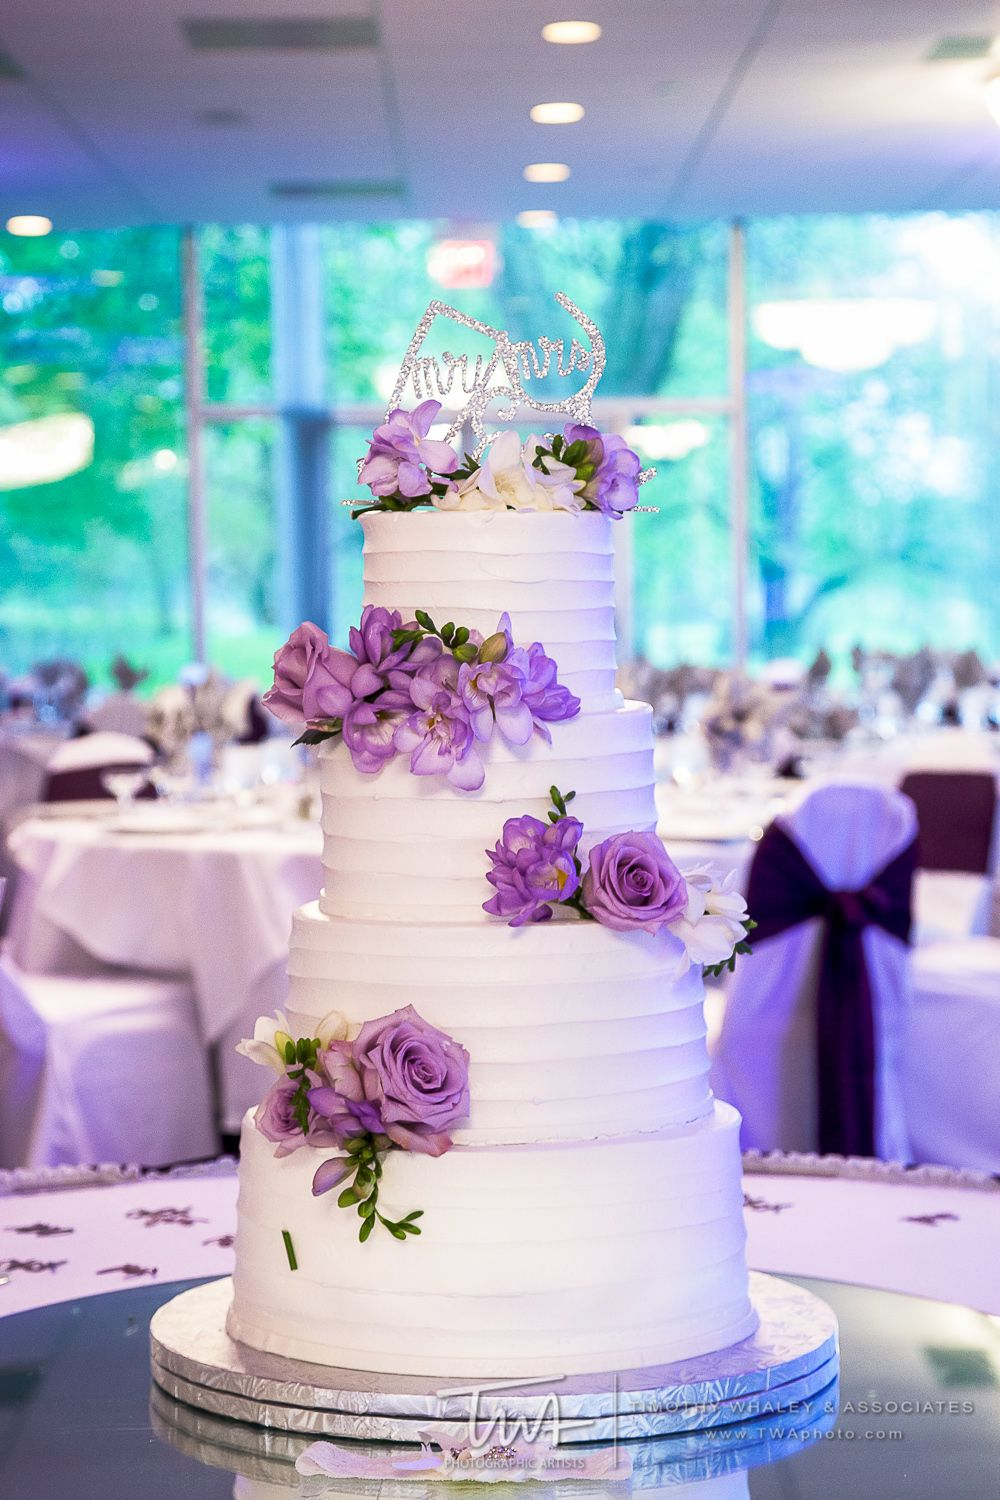 Twa Weddings At Old Orchard Country Club Click The Picture To Visit Our Website